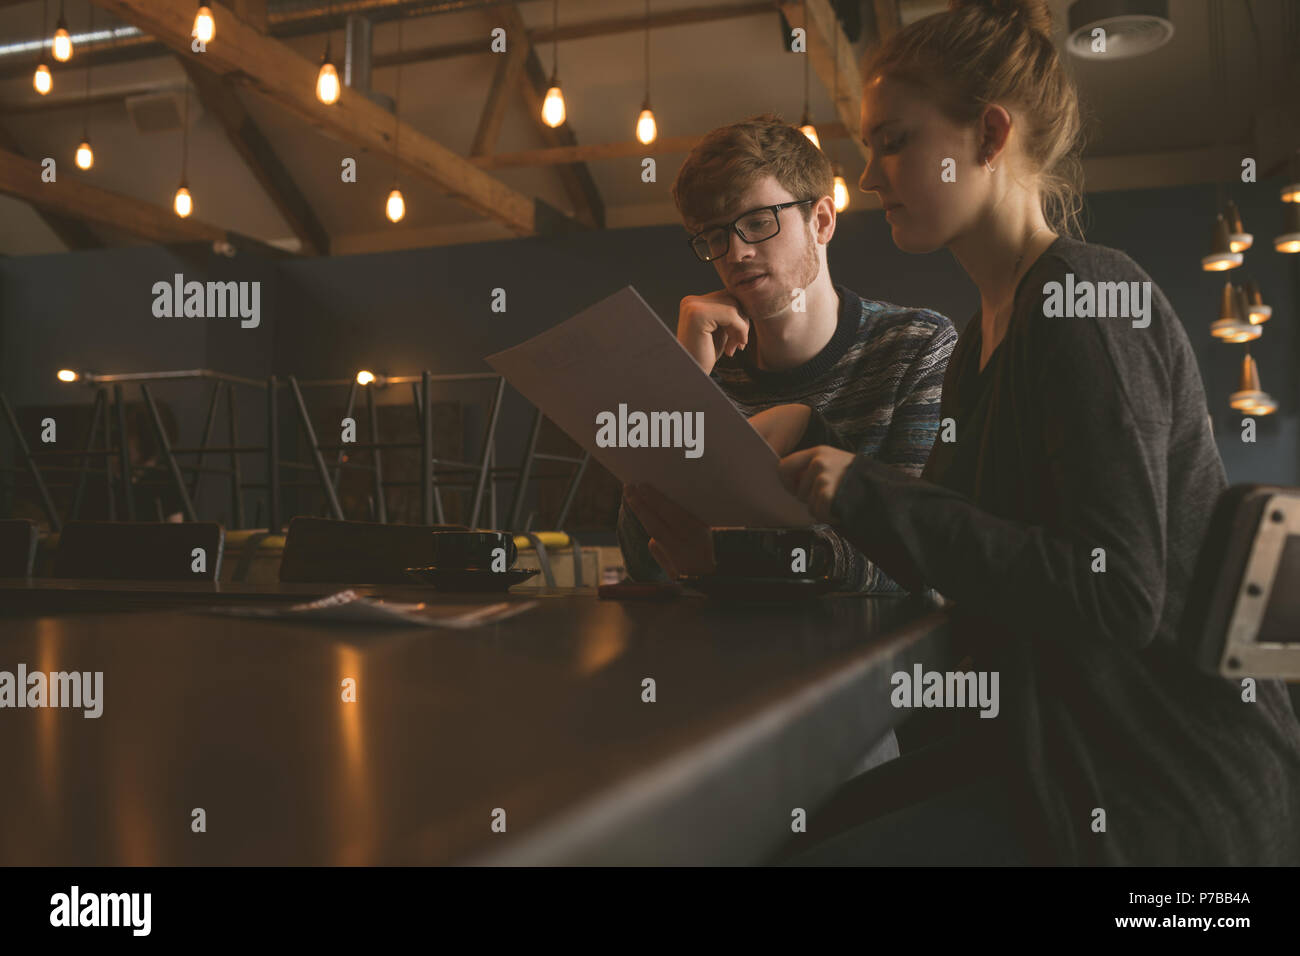 Contrôle de couple de la carte des menus au restaurant Photo Stock